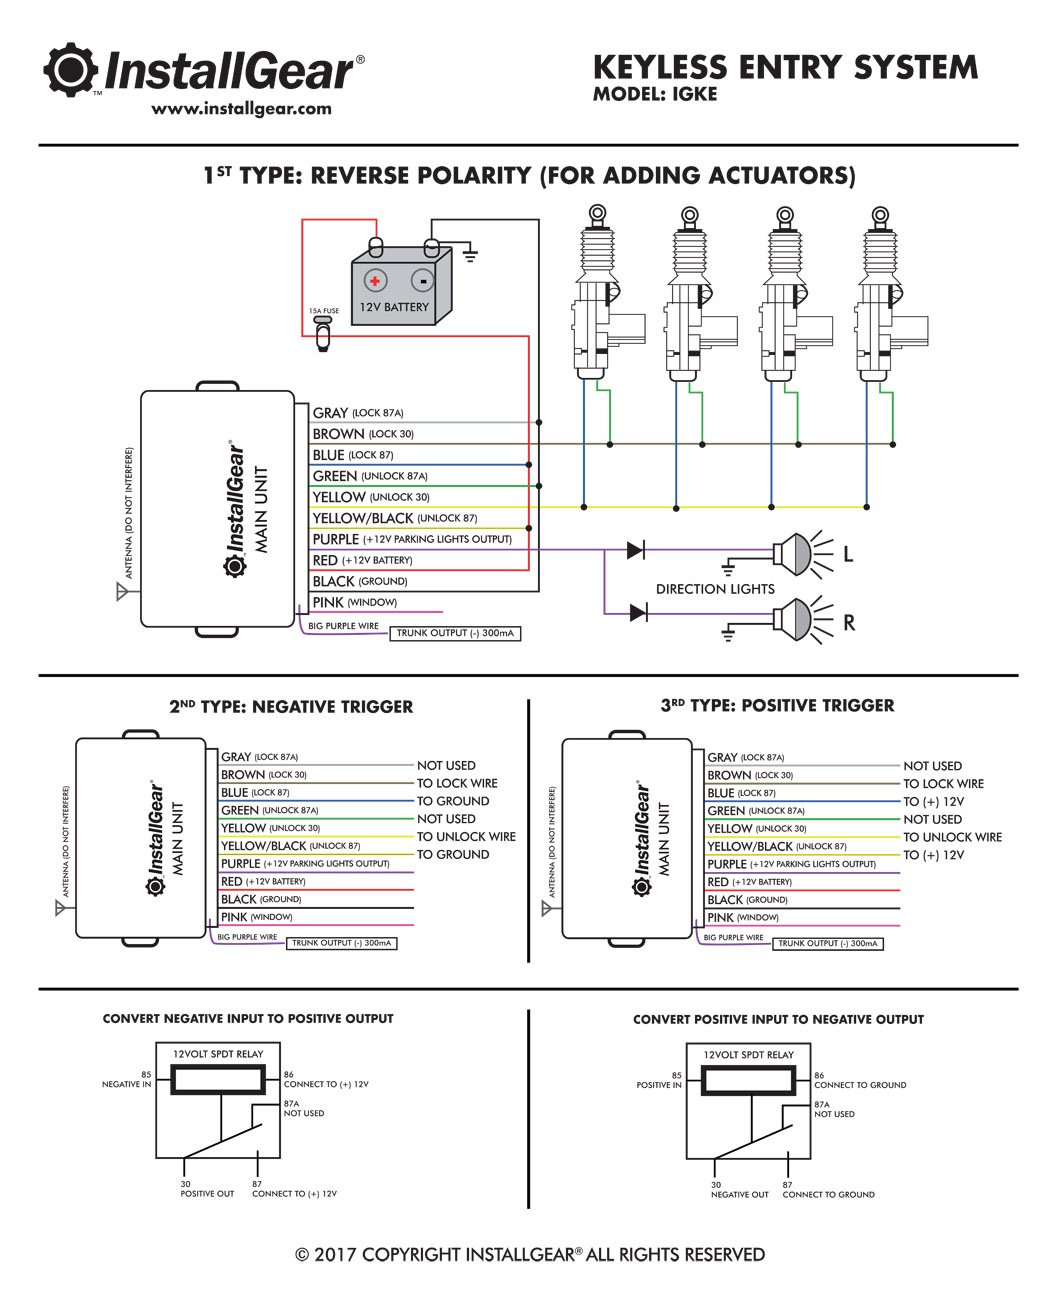 Installgear Car Alarm Security Keyless Entry System 5 Post Relay Wiring Diagram Negative Electronics